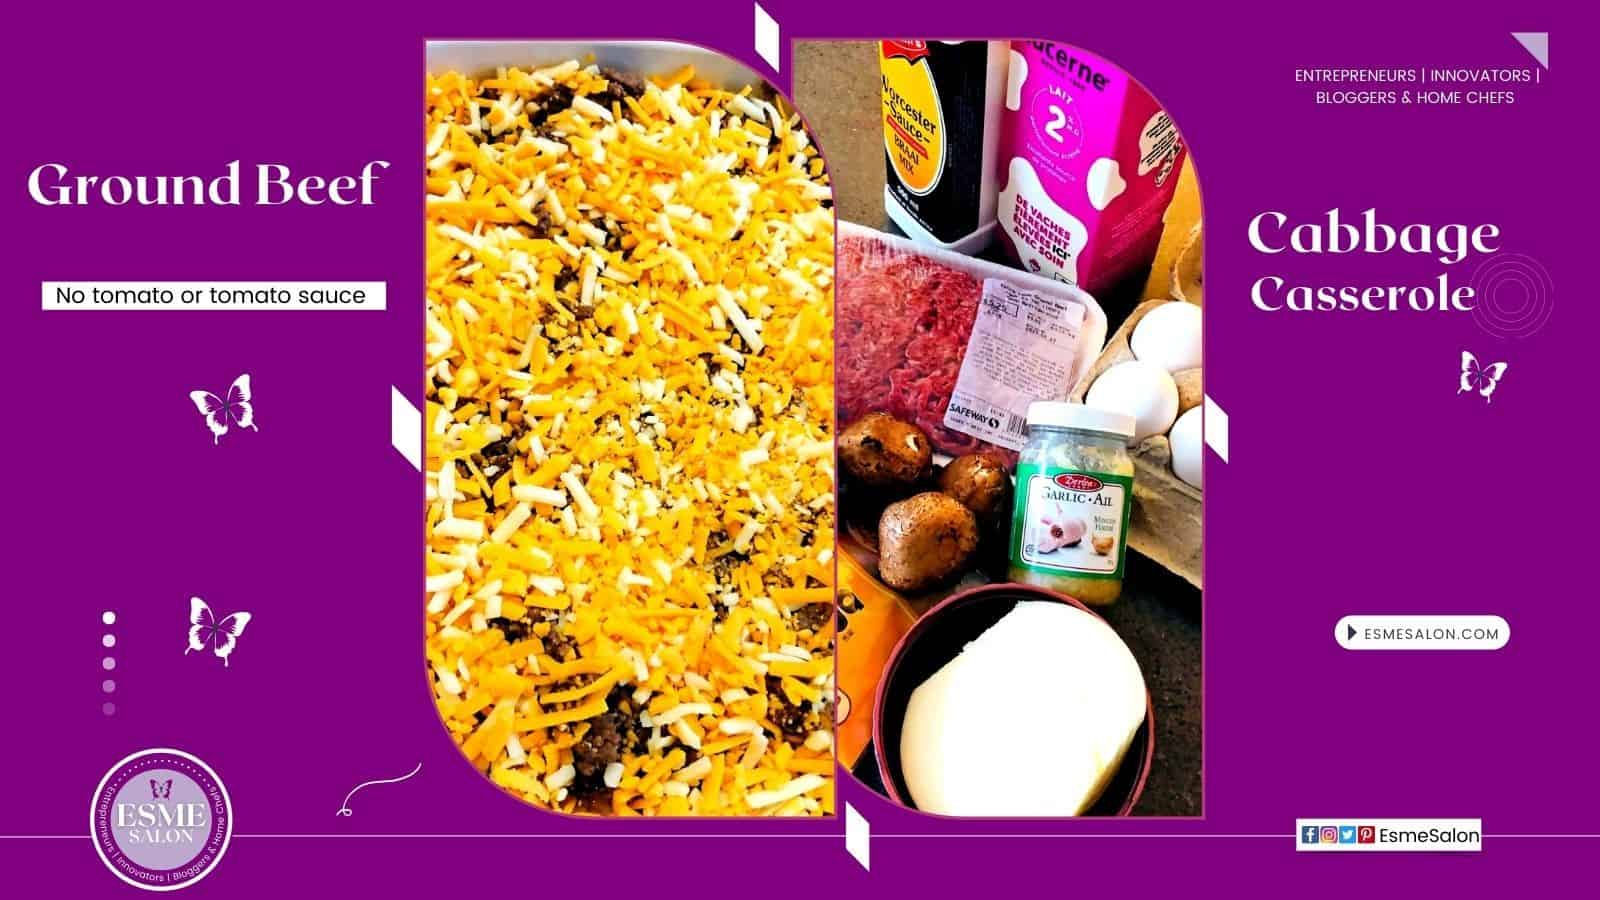 One pan Ground Beef Cabbage Casserole with cheese and mushrooms, garlic, eggs, onion, spices and a pink carton of milk on the side